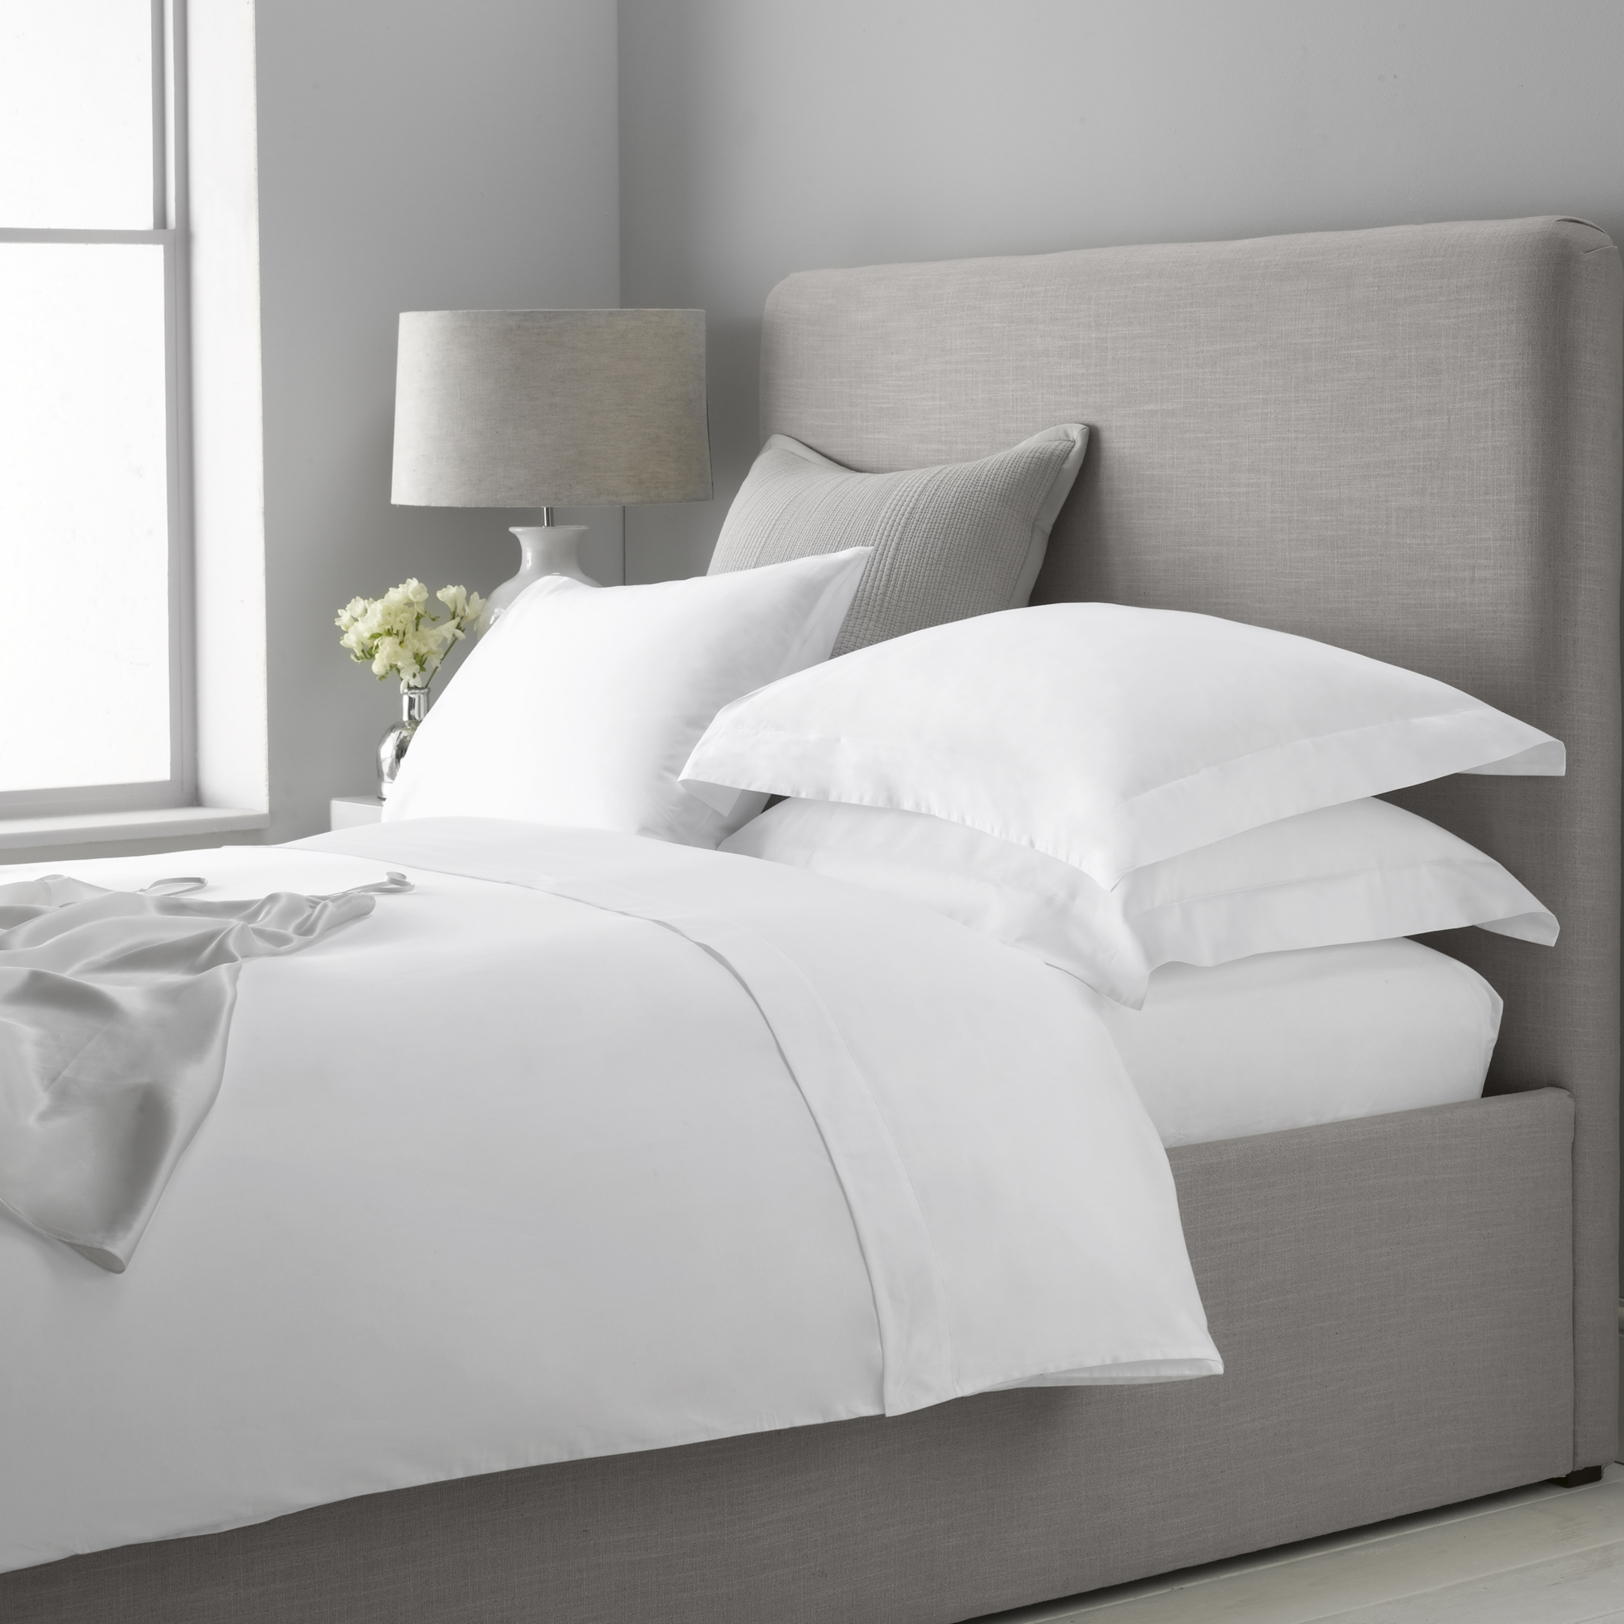 300 thread count egyptian cotton bed linen collection   view all